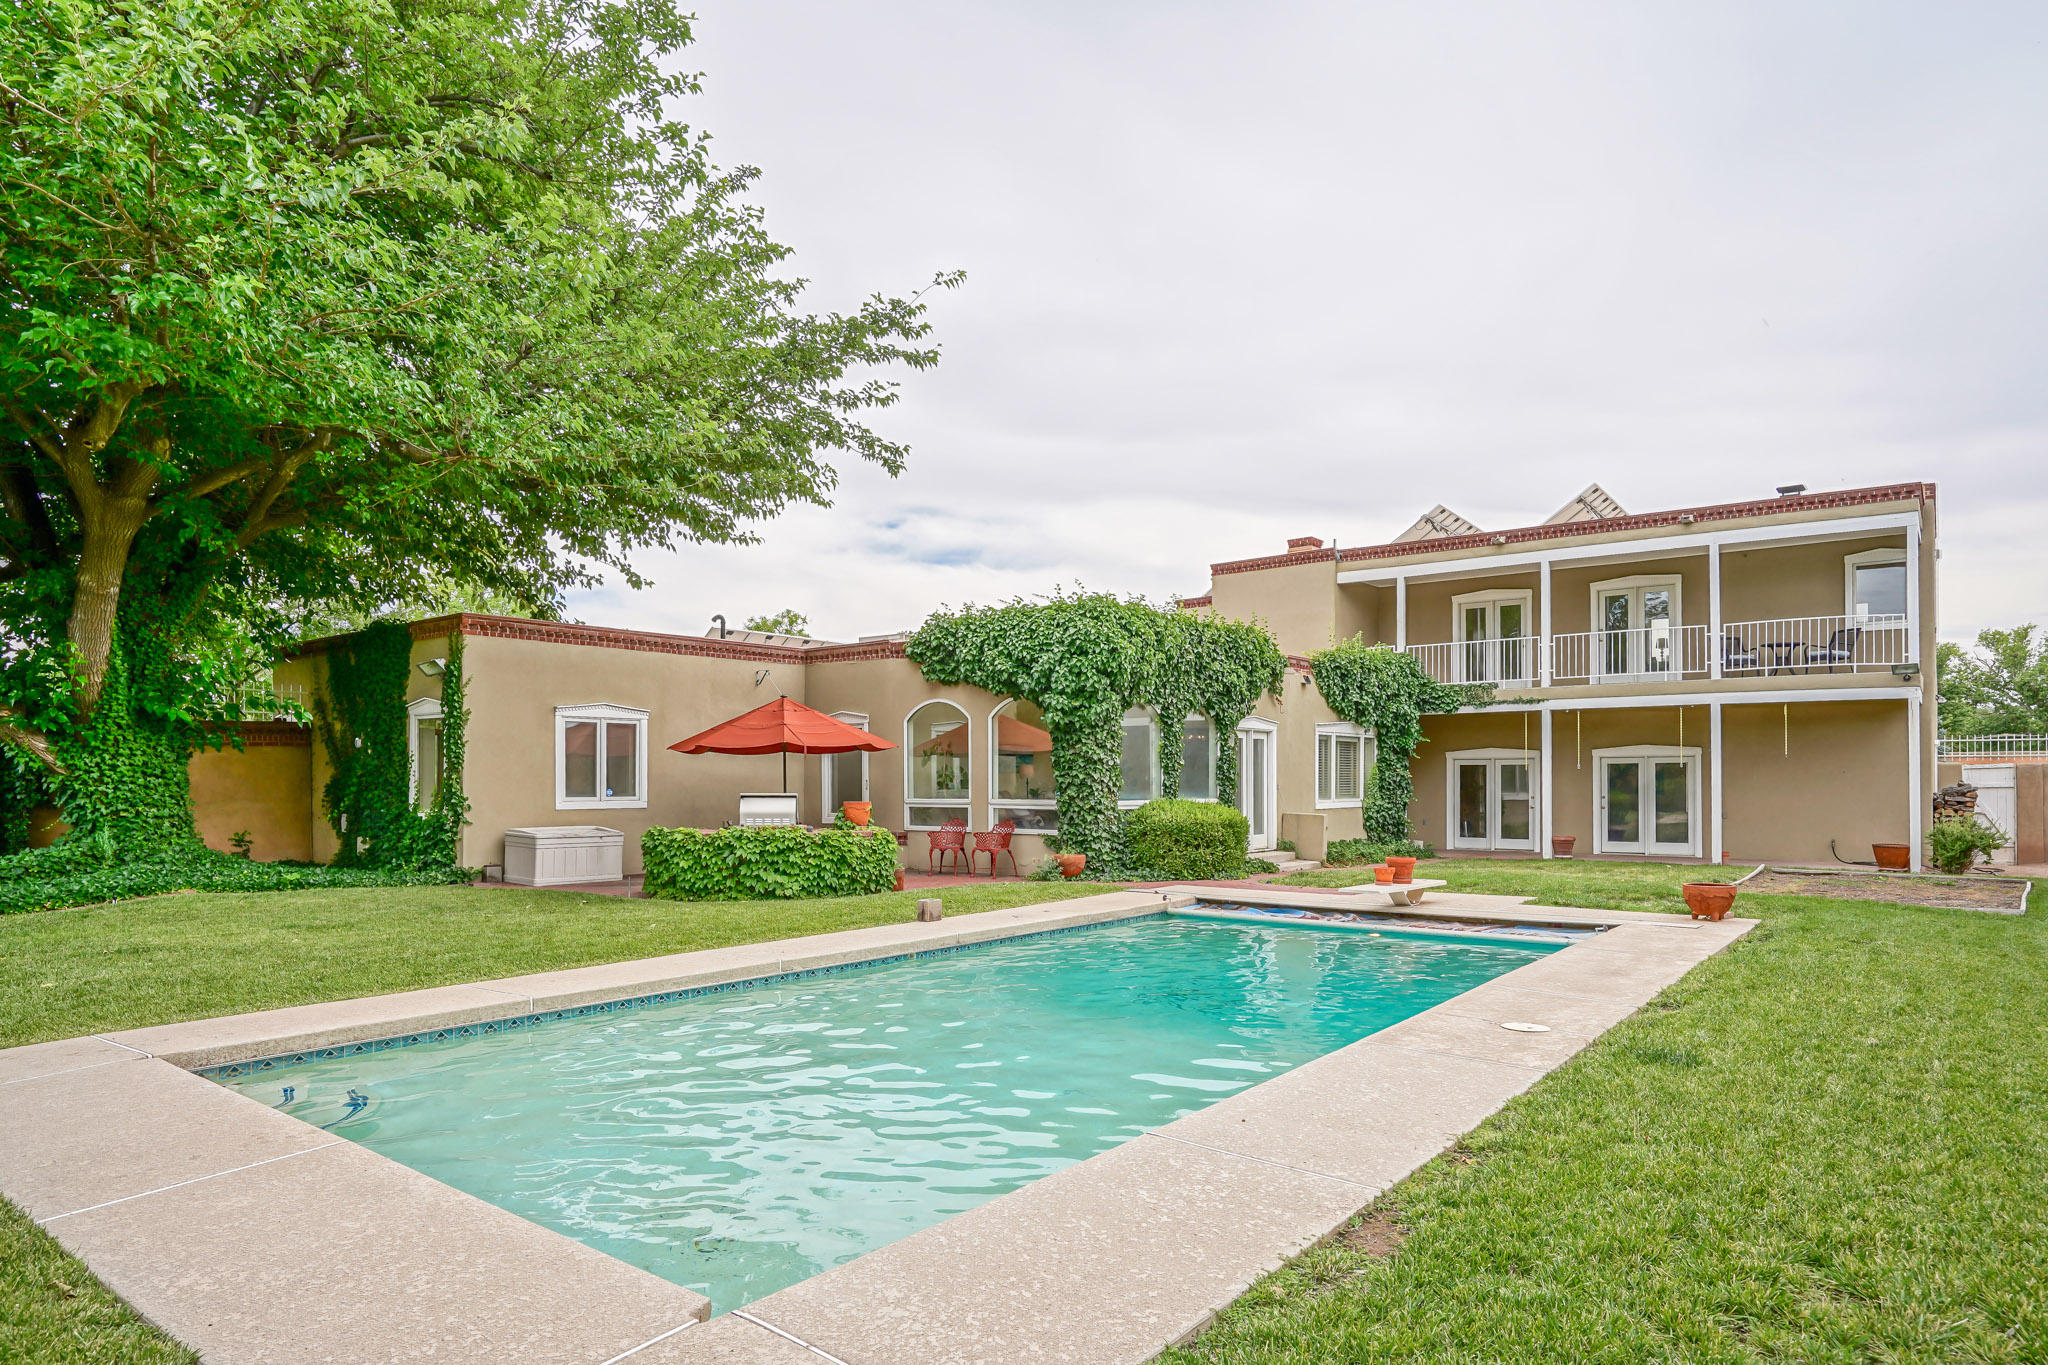 Rare find! Beautiful, rambling, Classic Spanish Territorial on .42 of Acre across from lush green Prado Del Sol park. 5 Bedroom, 6 bath, Double Masters - one up; one down. Sparkling Gunite Swimming pool amidst a private backyard oasis. Features coveted brick floors, stunning refinished red hardwood oak floors, Lifetime transferable warranty TPO roof, top of the line Sub-Zero fridge/freezer, double ovens, 5 burner cooktop, Fire Magic Grill, Whole House backup generator system, owned Solar with no electric bill, epoxy garage floors. Ready for your vision -- solid enduring construction. So convenient to Uptown Shopping, Trader Joe's, Sunport Airport, Downtown, Air Force Base and UNM. Checkout the Virtual Tour in photo tab.